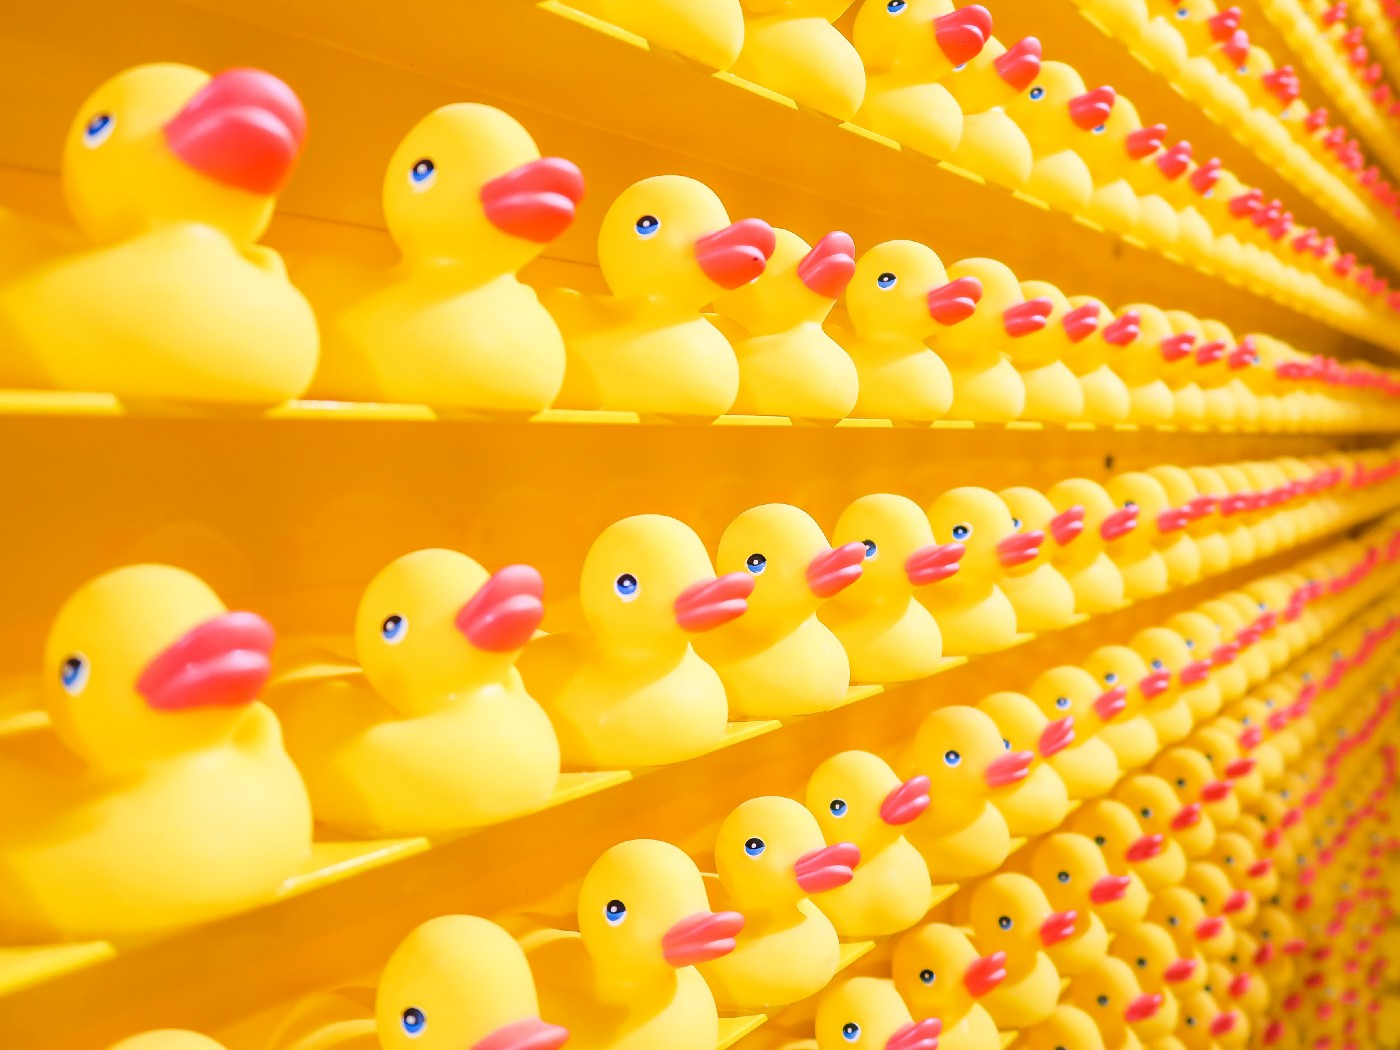 Dozens of yellow rubber ducks lined up in rows on shelves